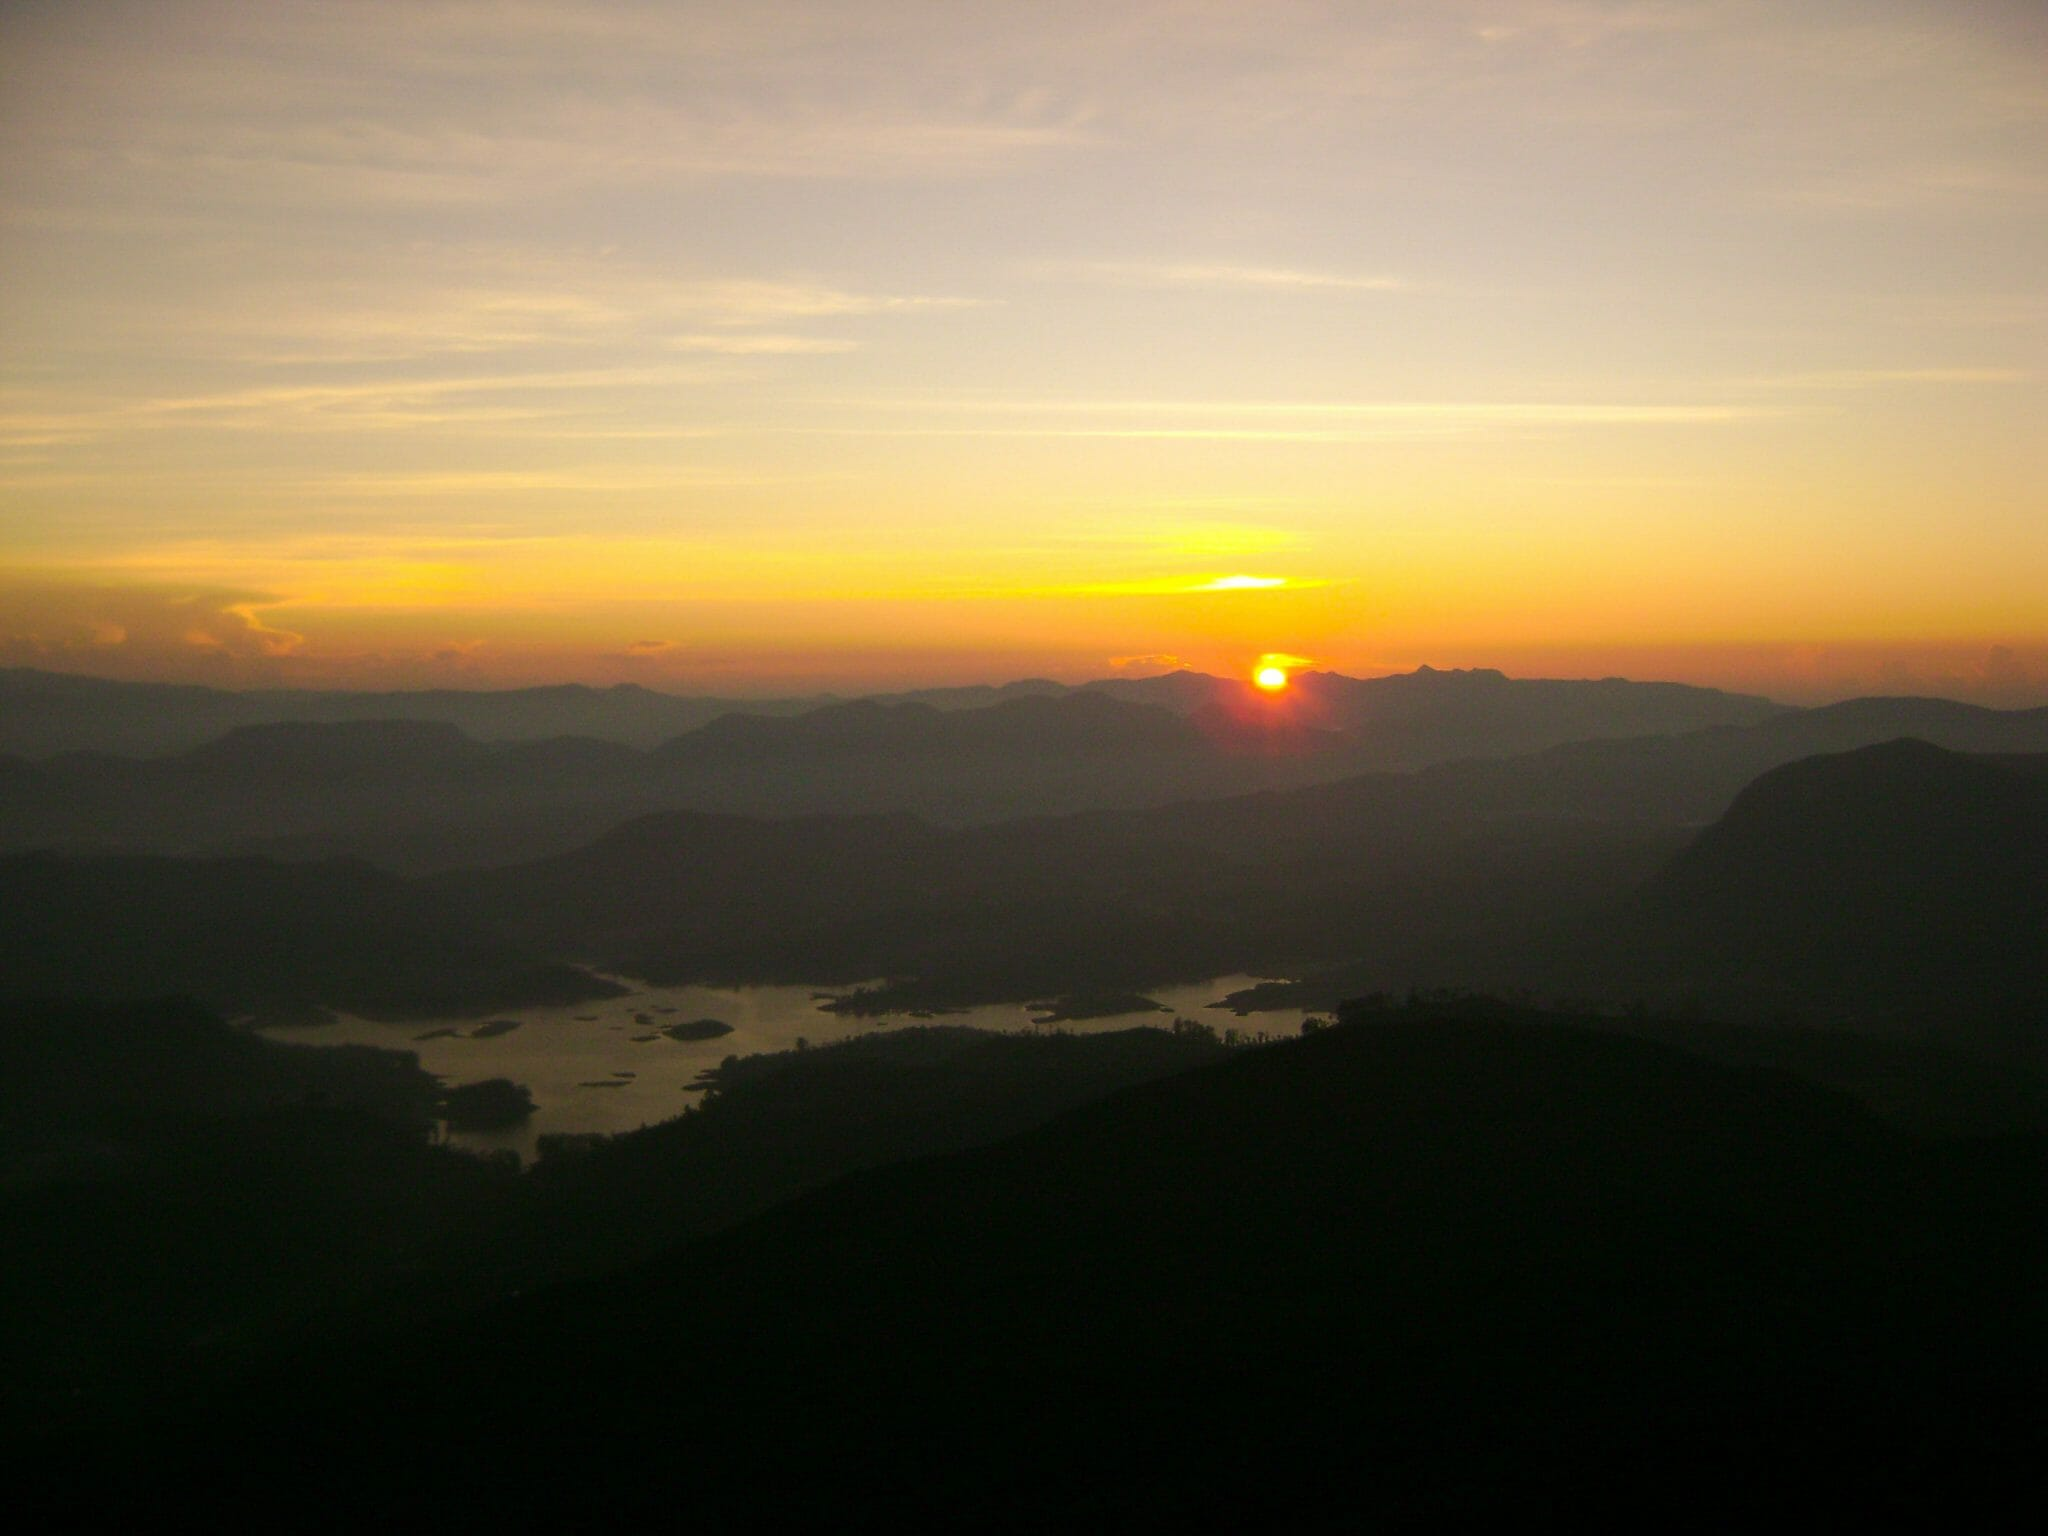 Sun Rise at Adam's Peak